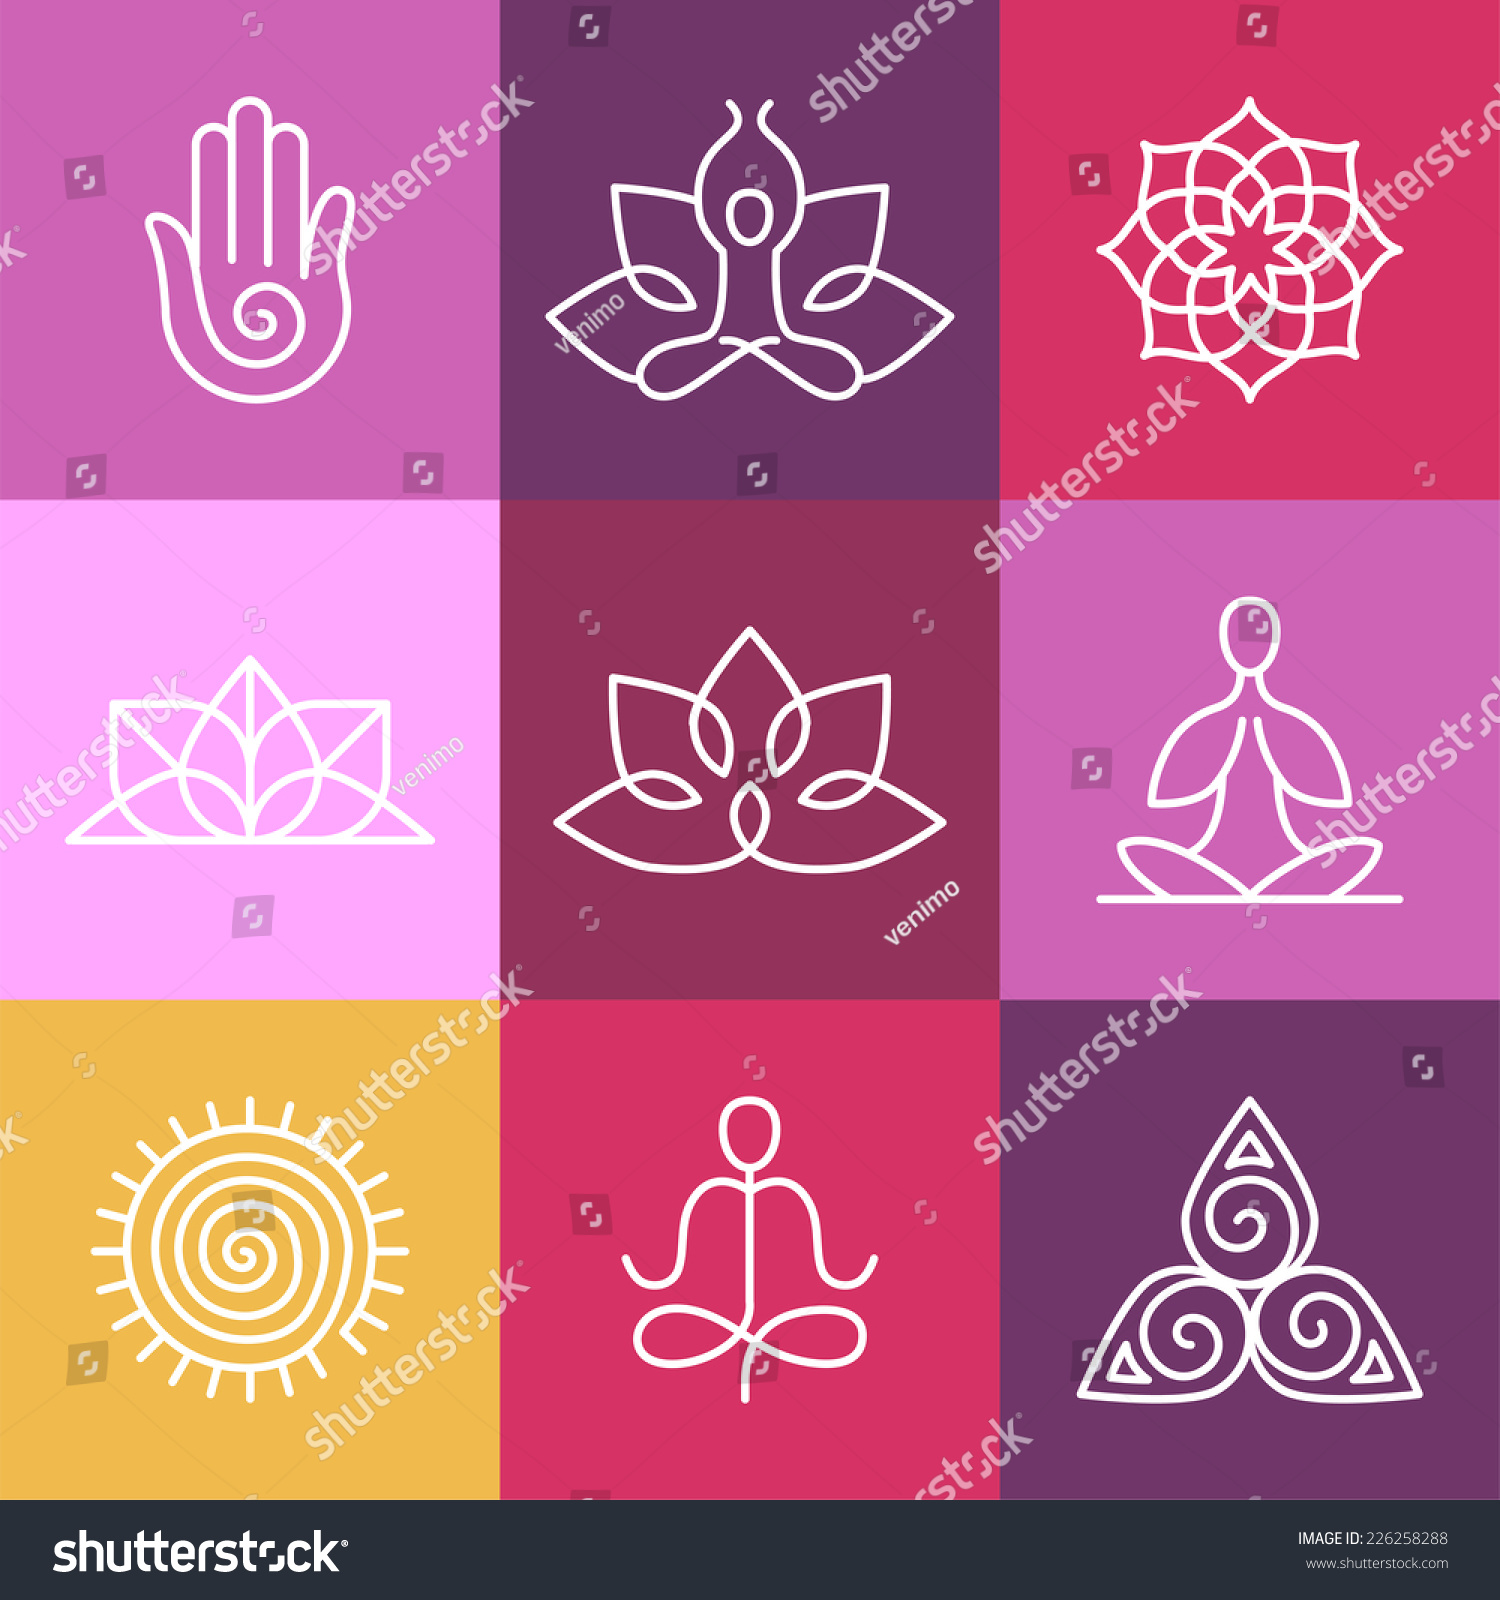 Graphic Design Elements Line : Vector yoga icons round line badges stock